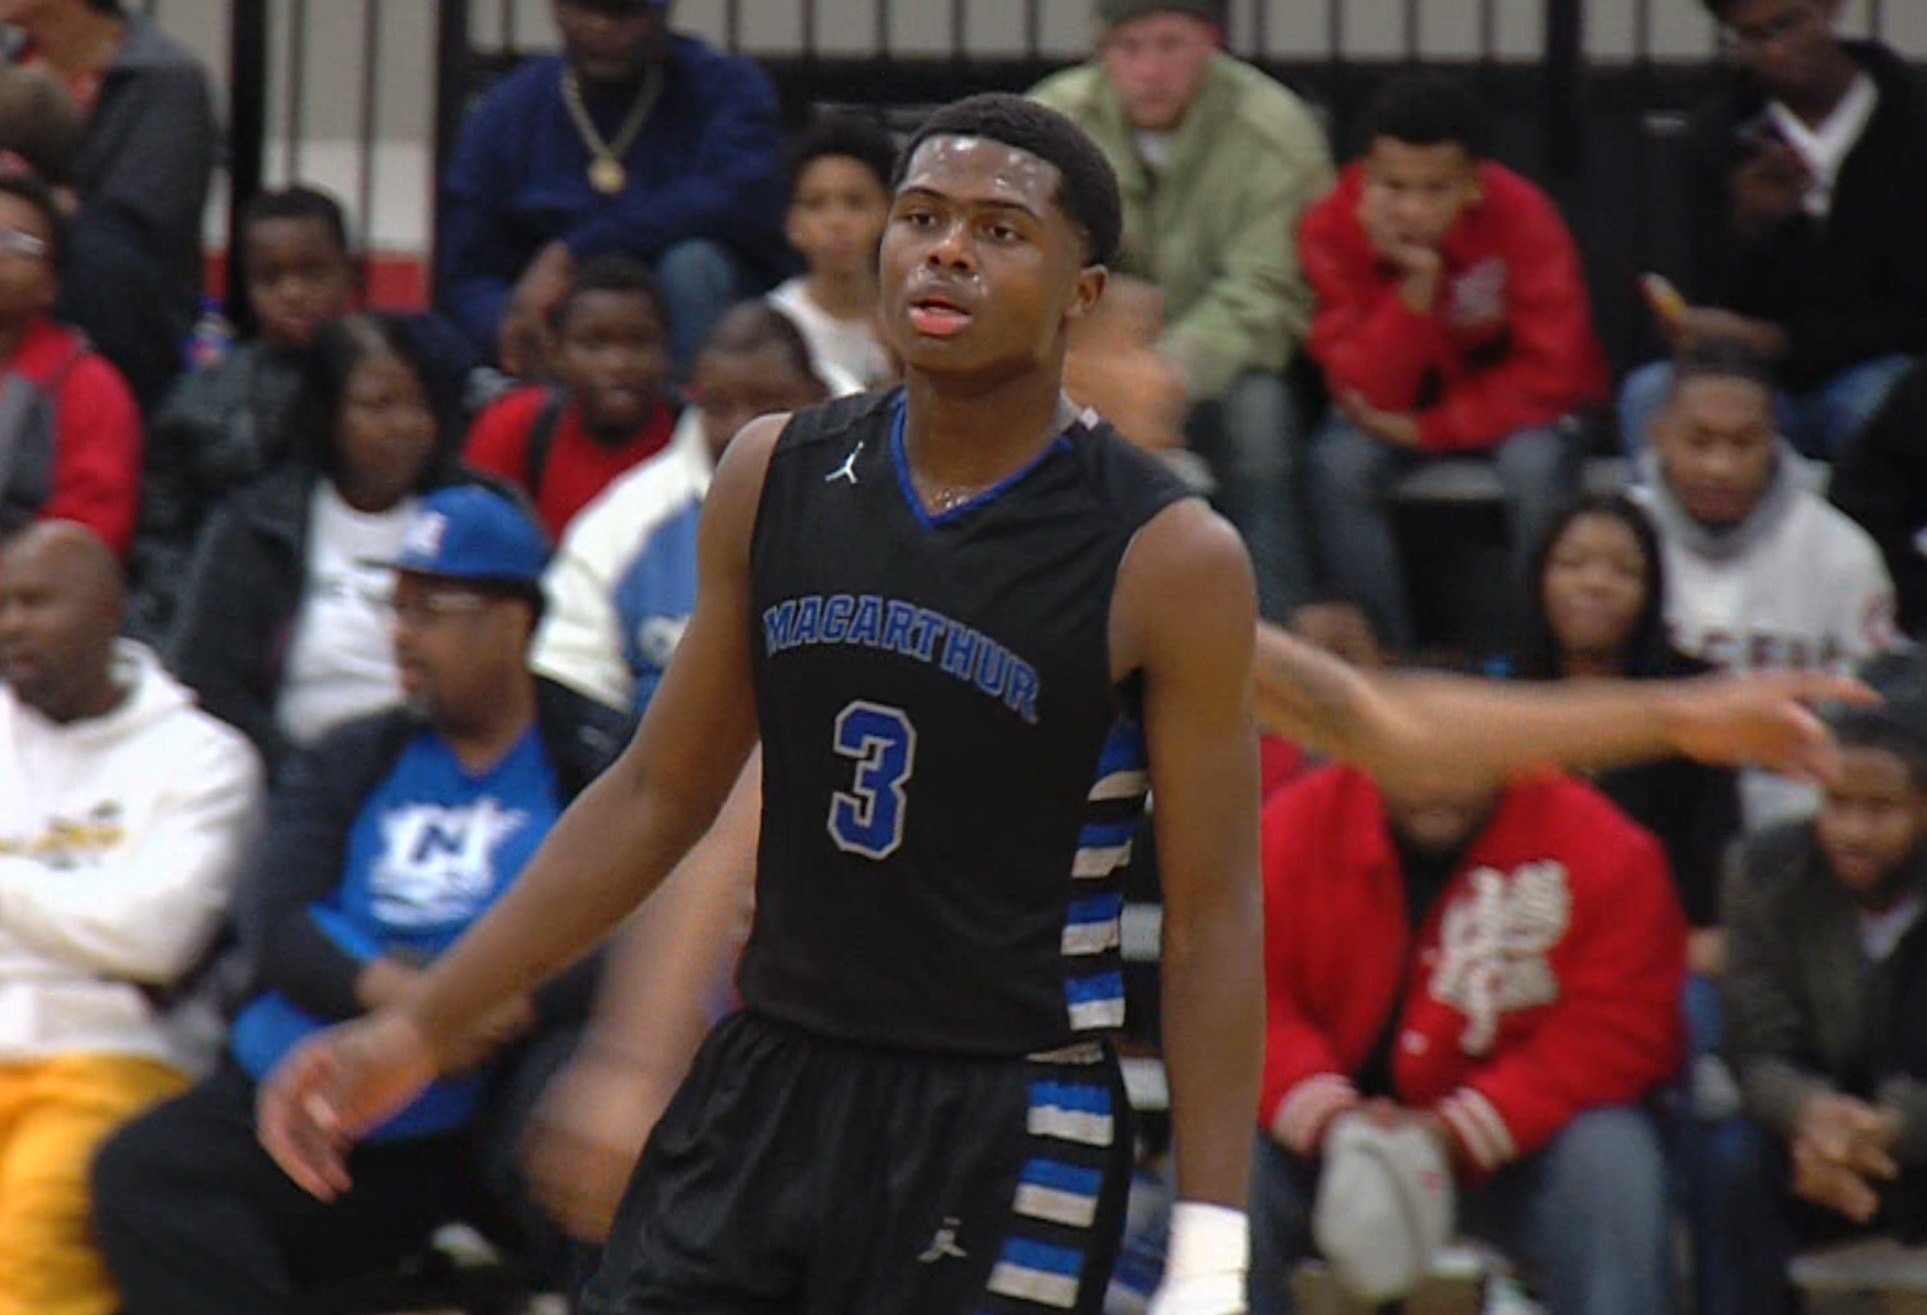 Amir Brummett led MacArthur with 28 points and 9 rebounds in the Generals' 66-53 win over Chicagoland power Thornton.